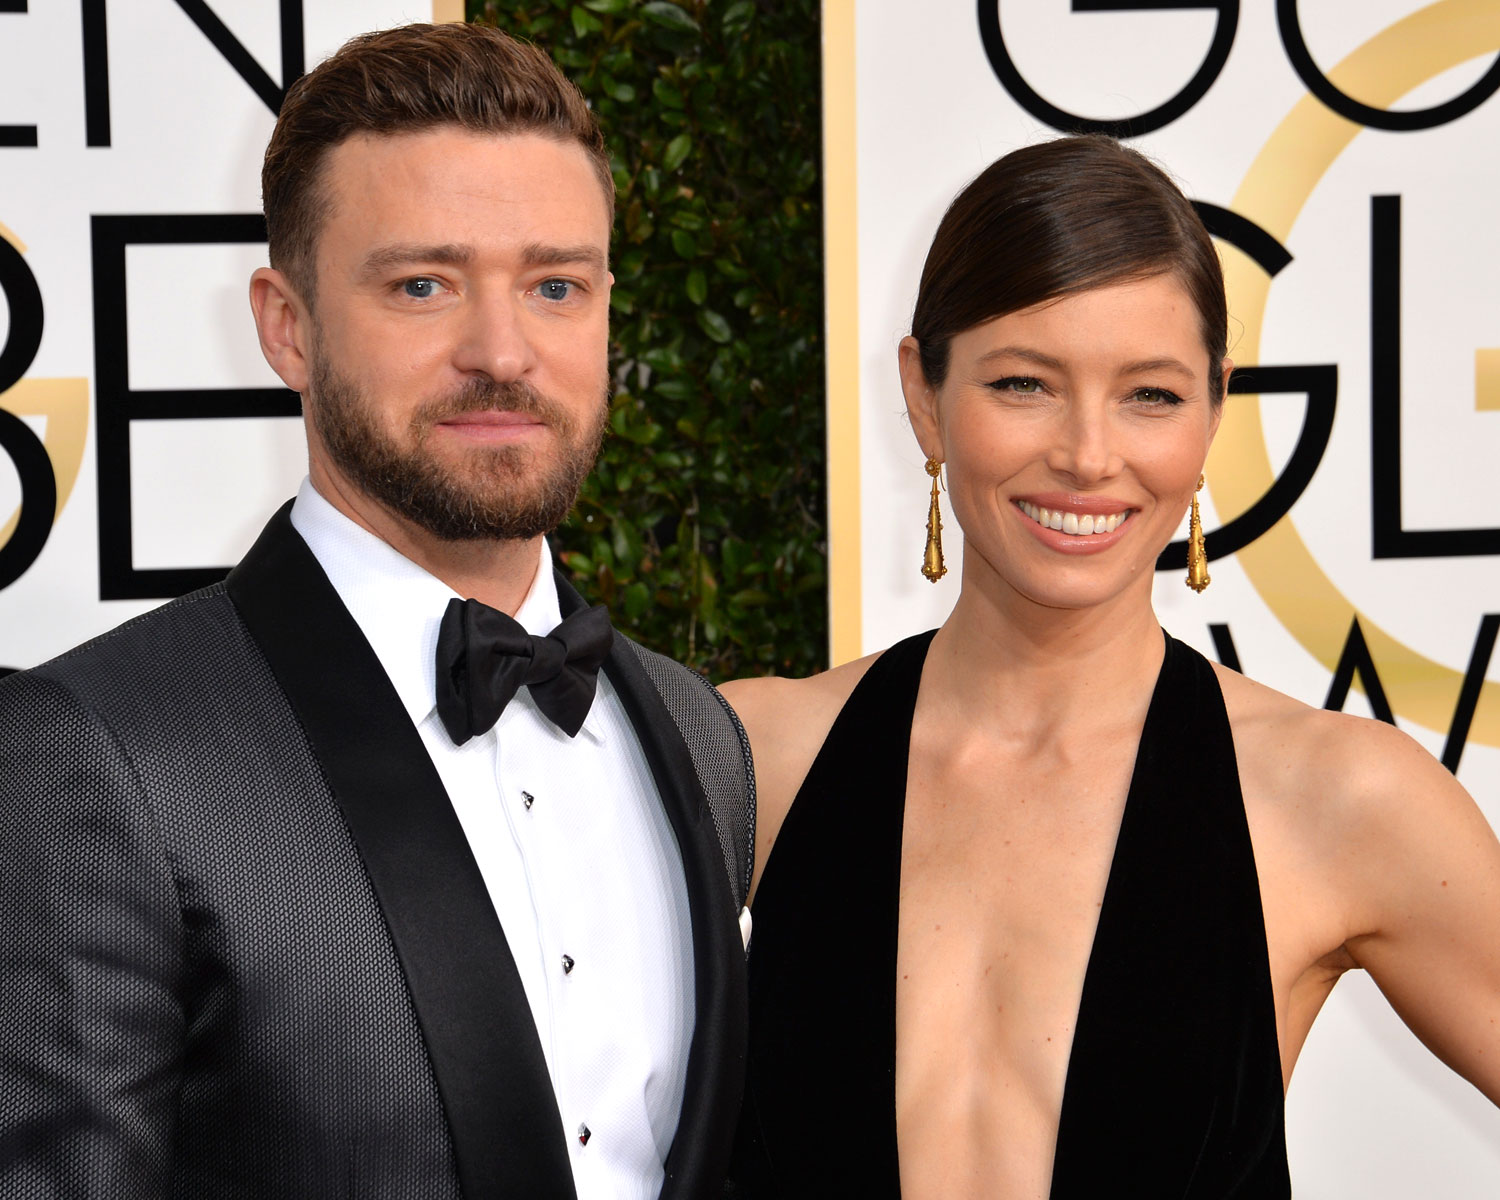 Jessica Biel Says She And Justin Timberlake Are Teaching Their 2-Year-Old About Sex